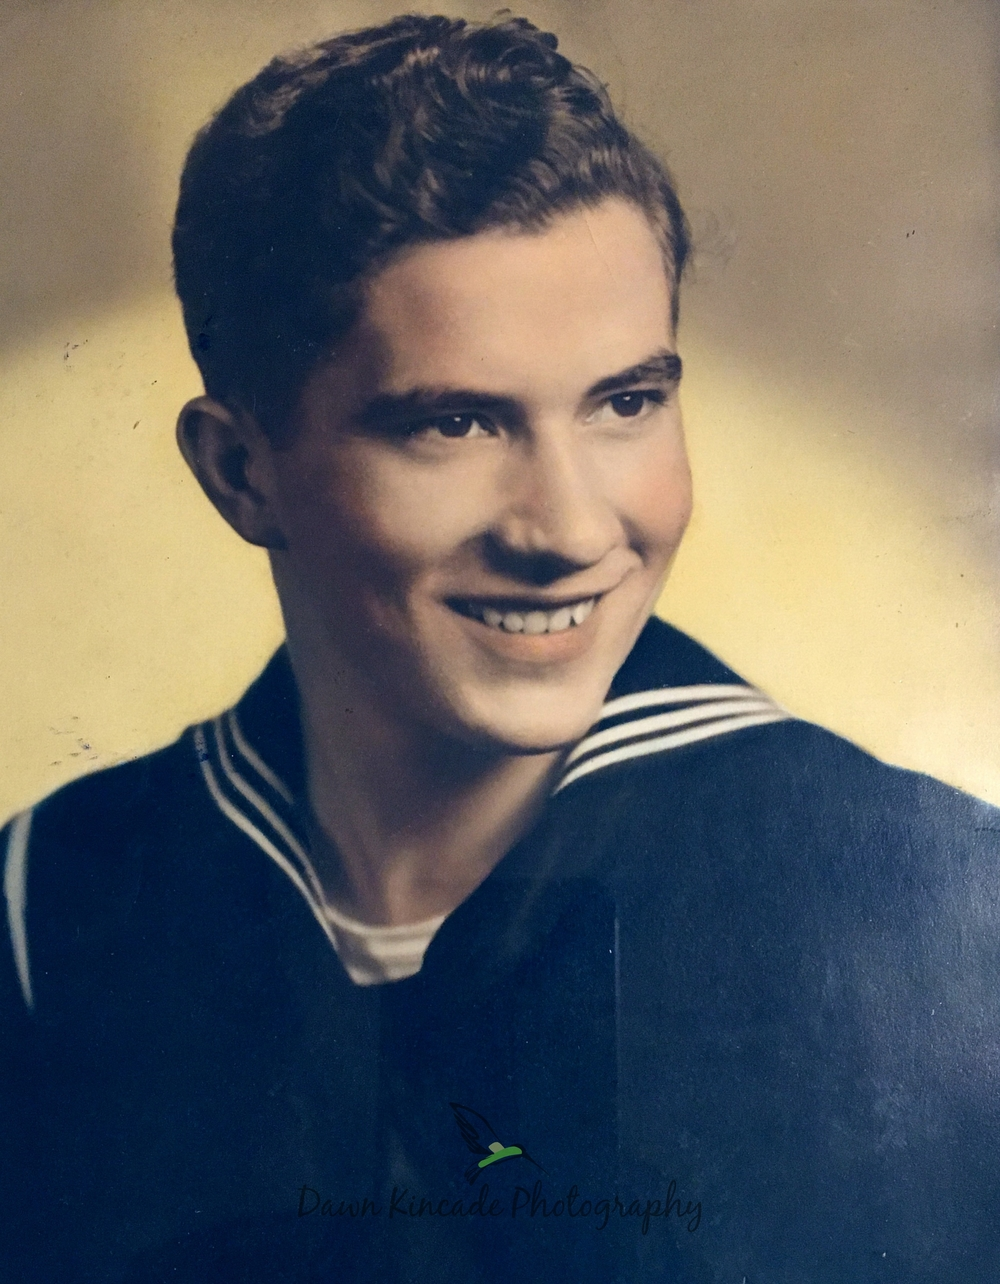 My Dad's Navy snapshot. This is not my photo but a scanned copy. Photo credit to the Navy.